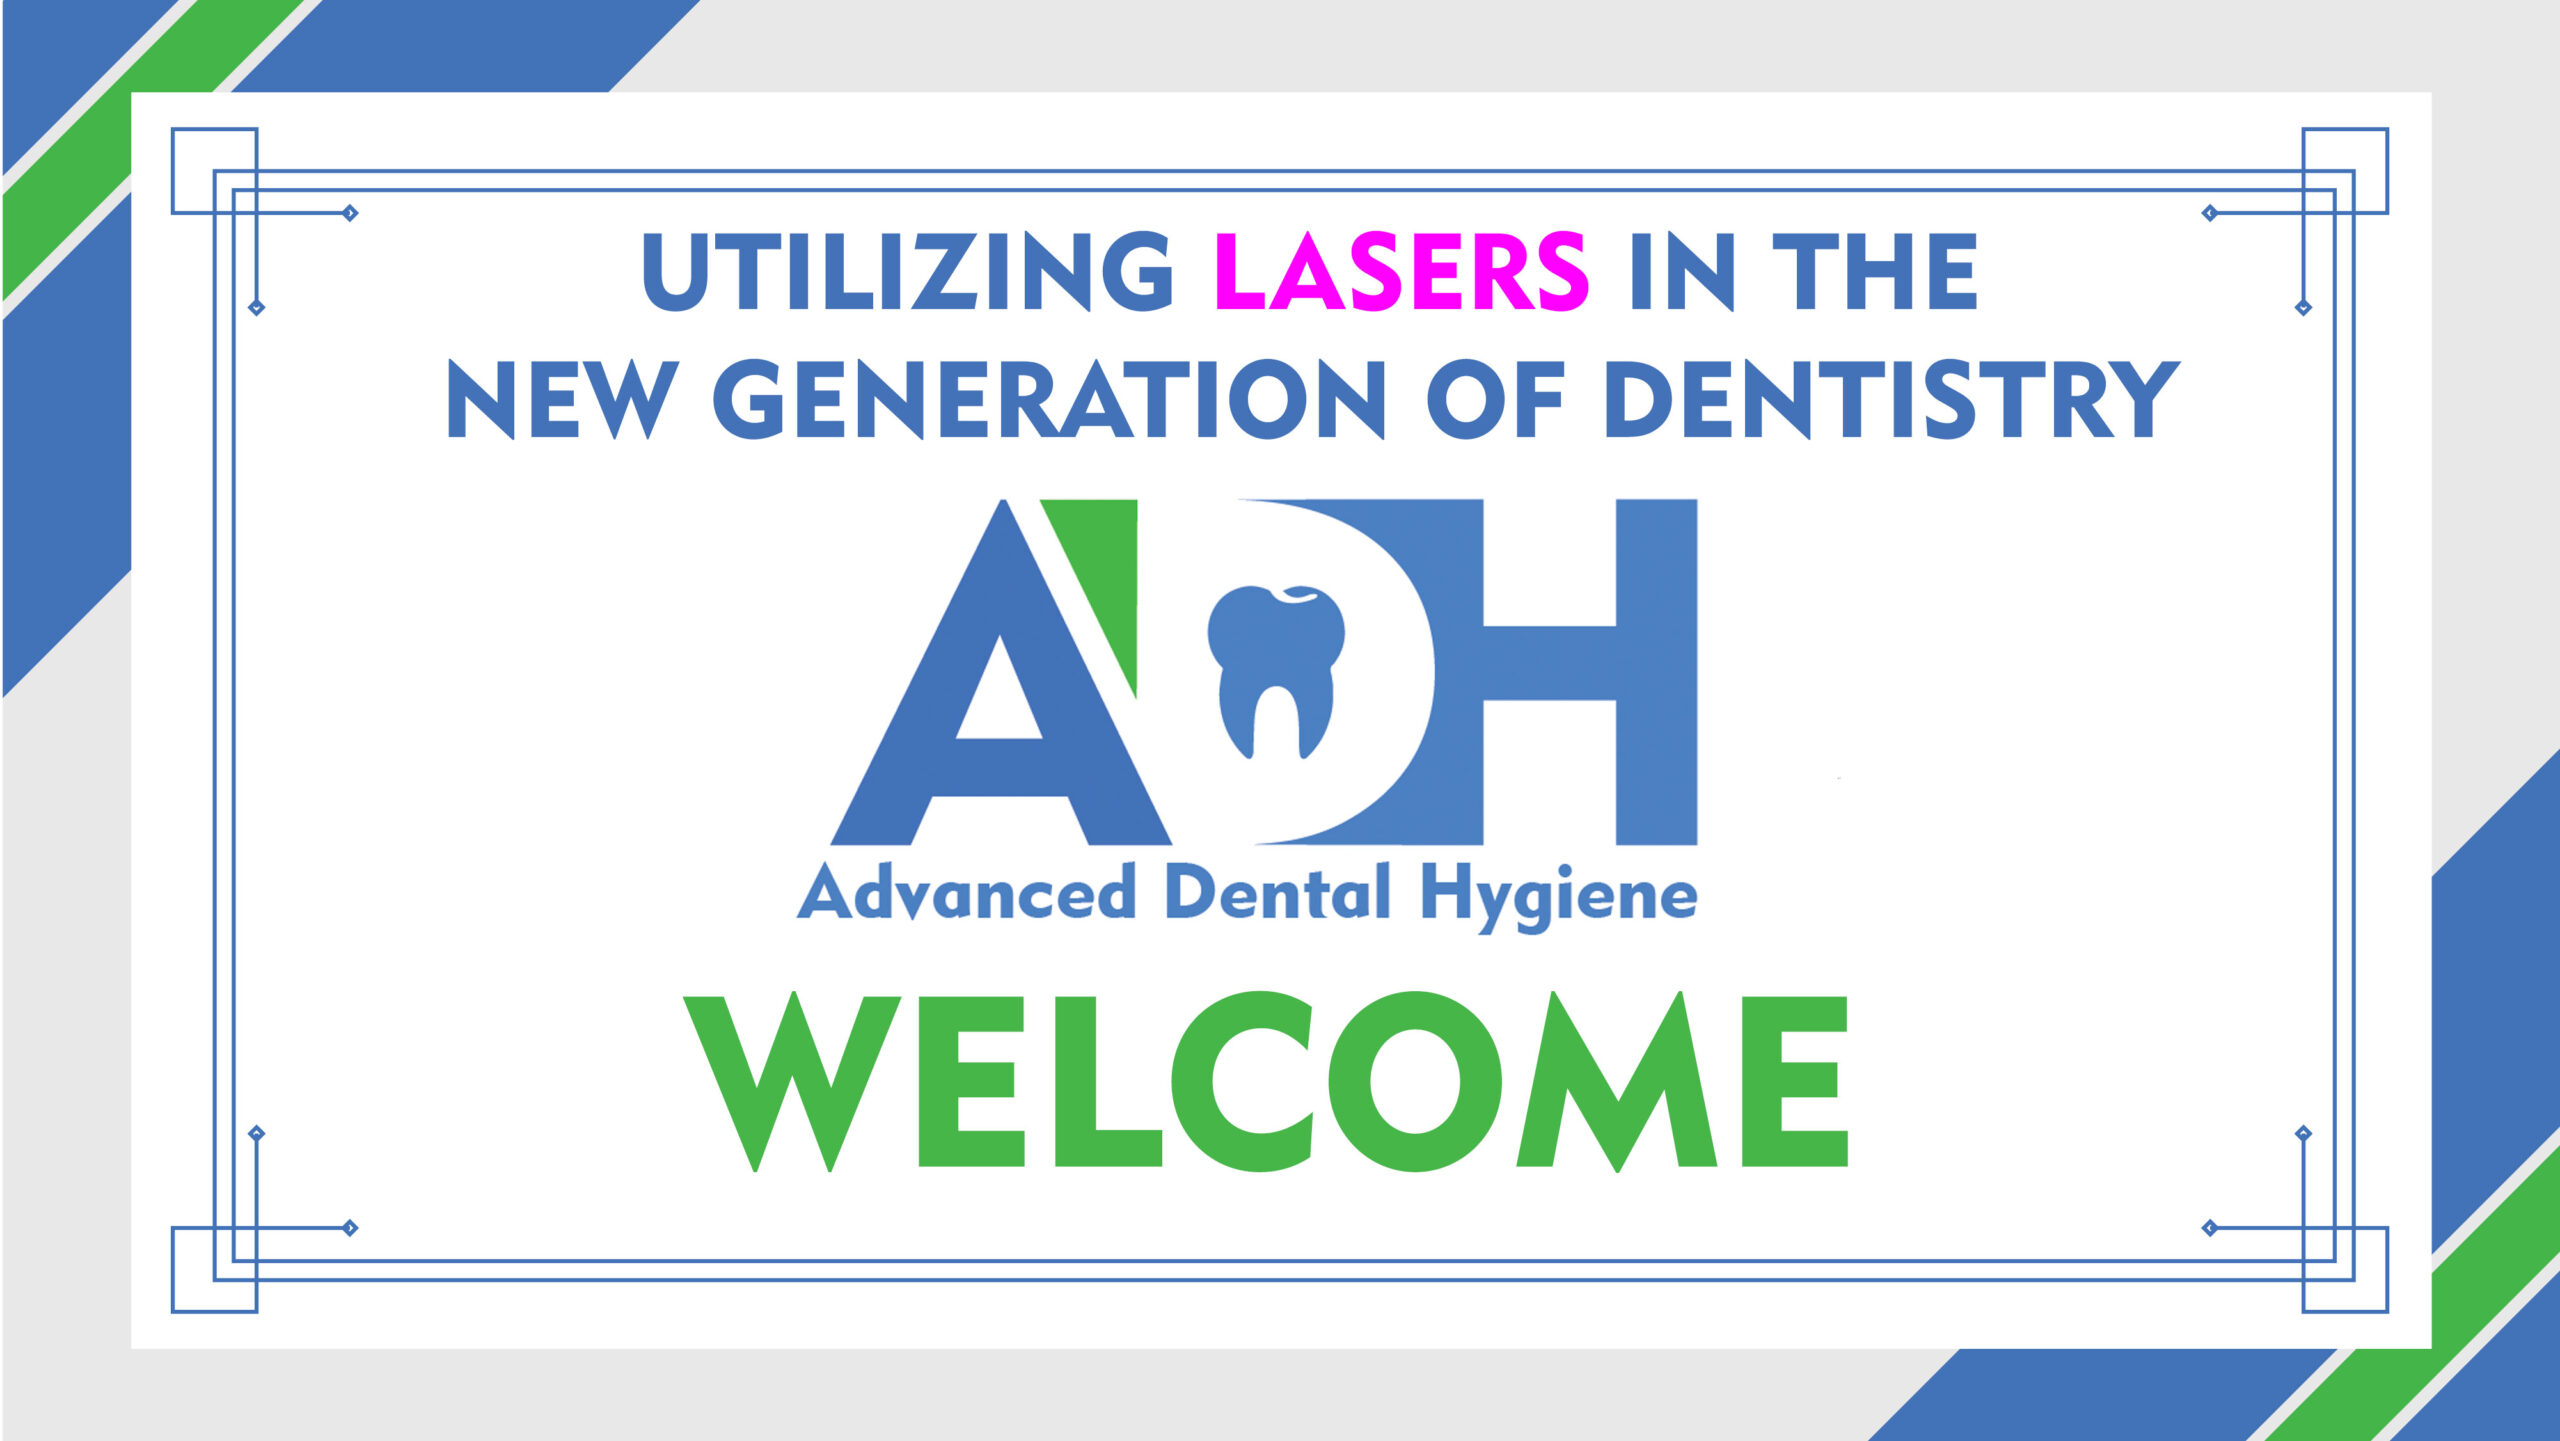 Utilizing Lasers in the New Generation of Dentistry